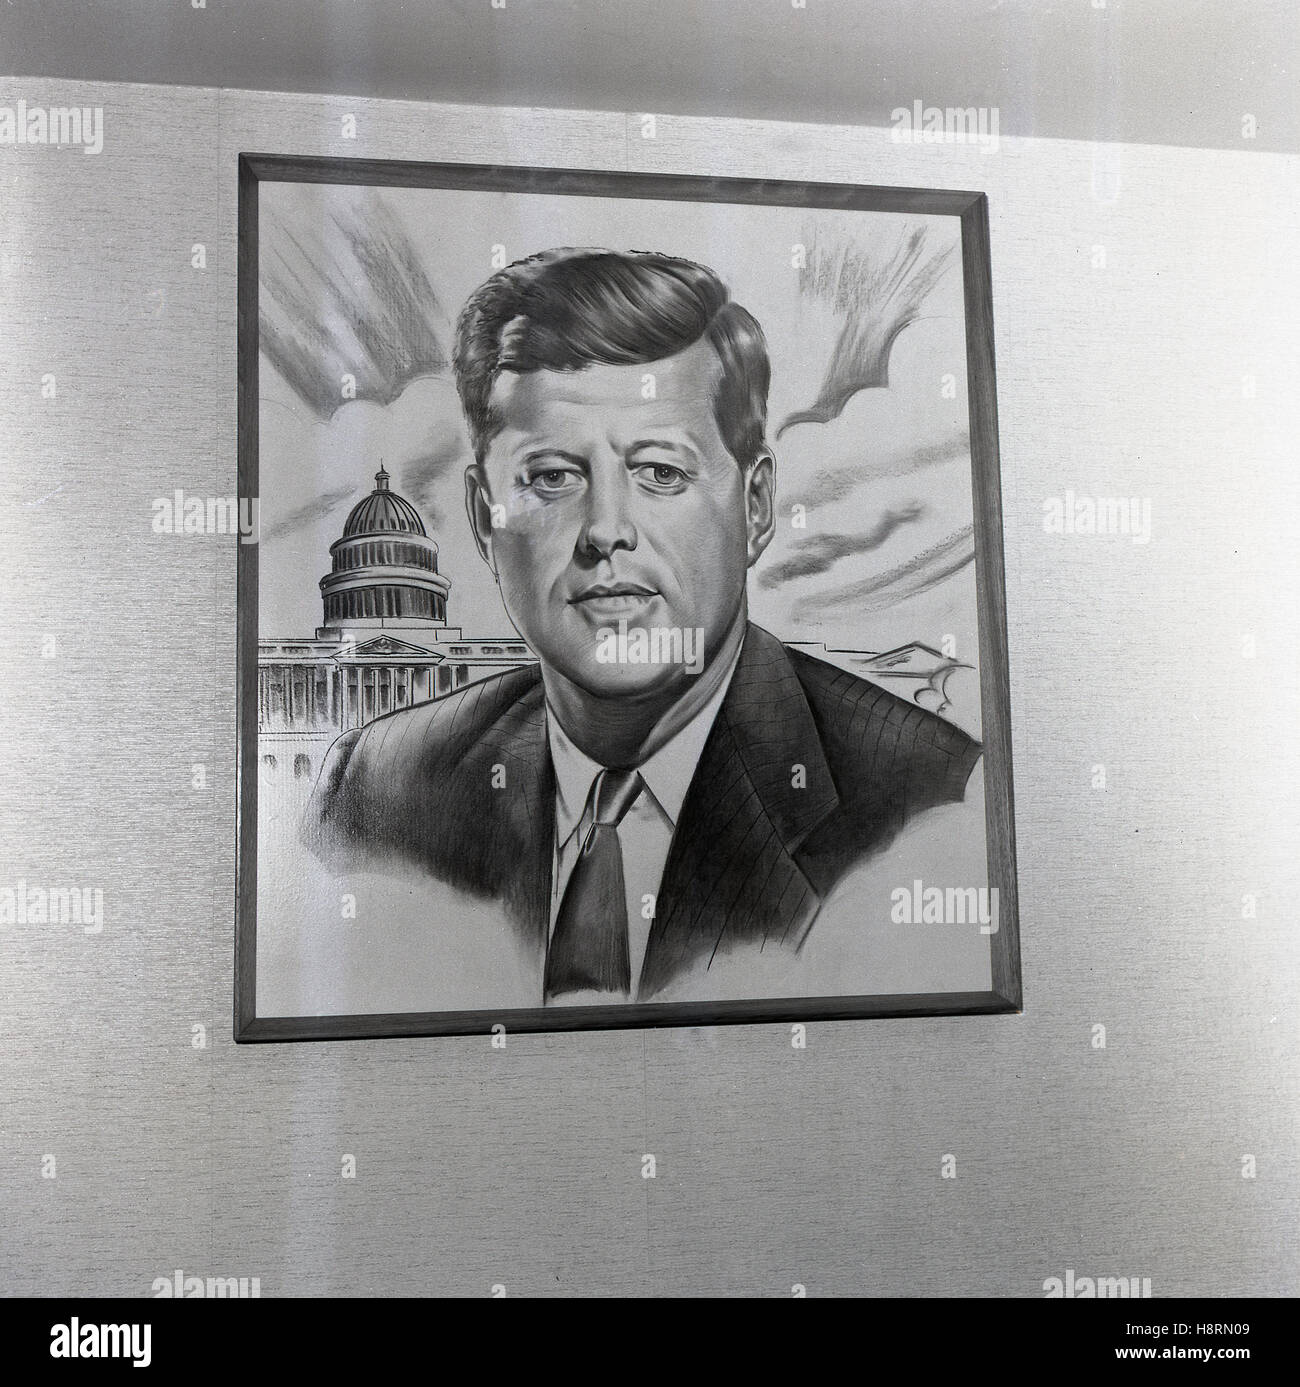 1965 historical, pencil drawing on the wall of the 35th American President, John F. Kennedy in front of the Capitol, - Stock Image